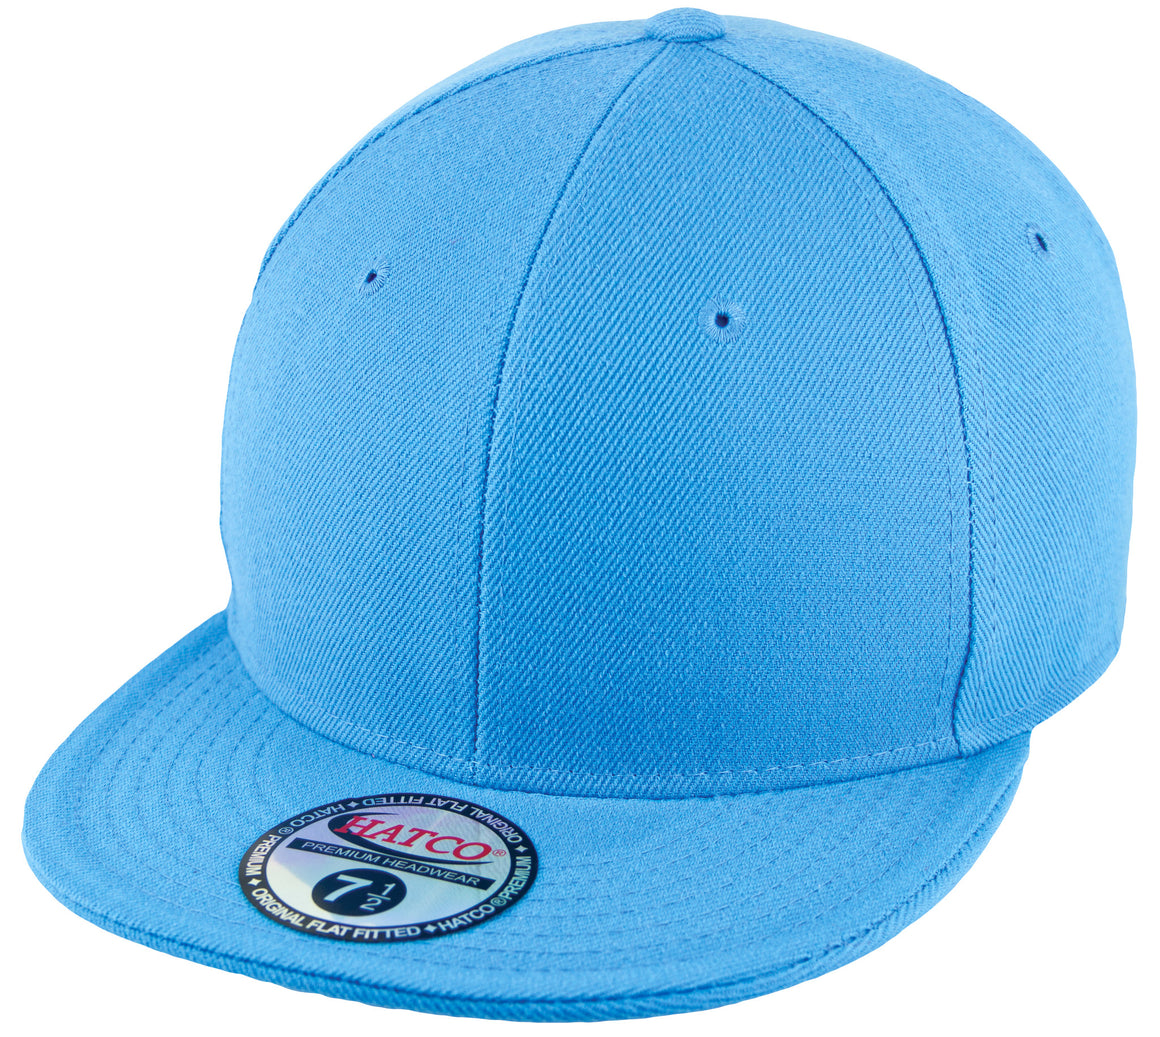 Blank Flat Fitted Cap - Sky Blue - HATCOcaps.com